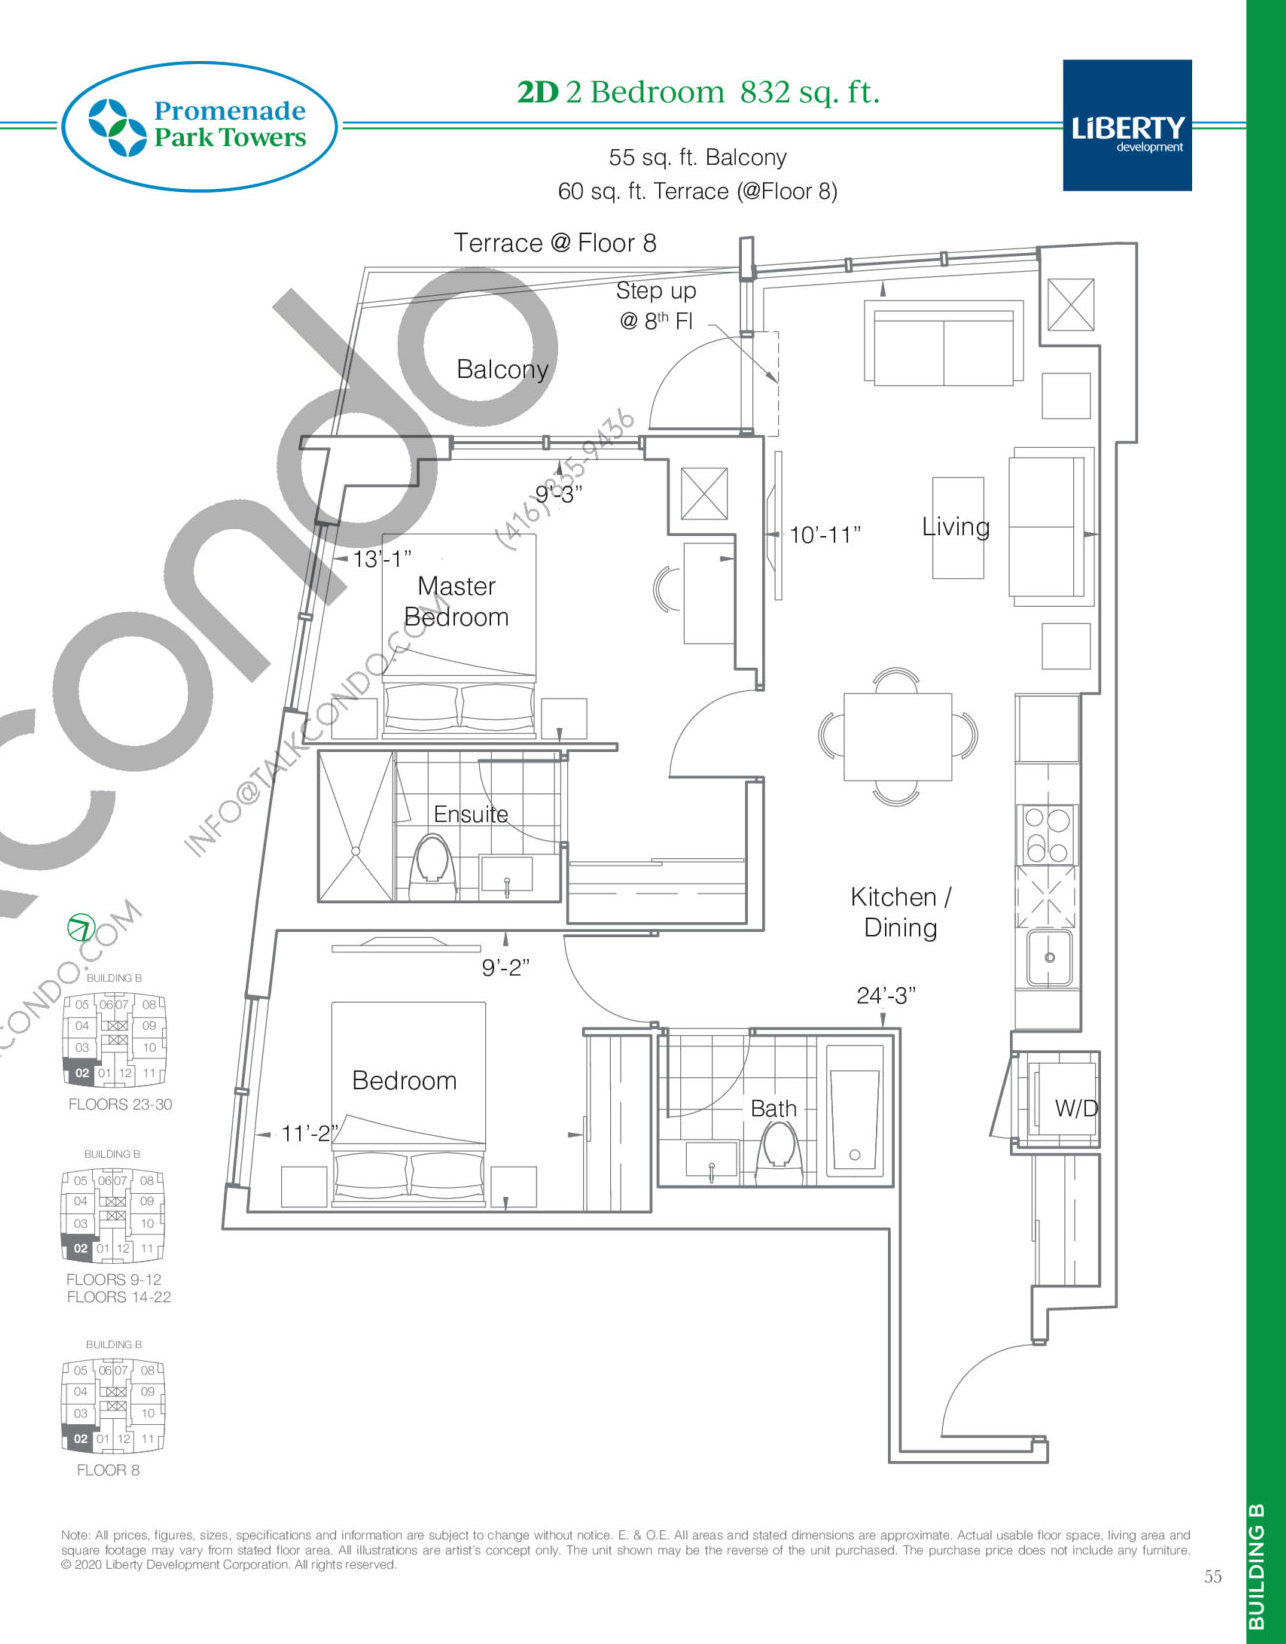 2D Floor Plan at Promenade Park Towers Phase 2 Condos - 832 sq.ft